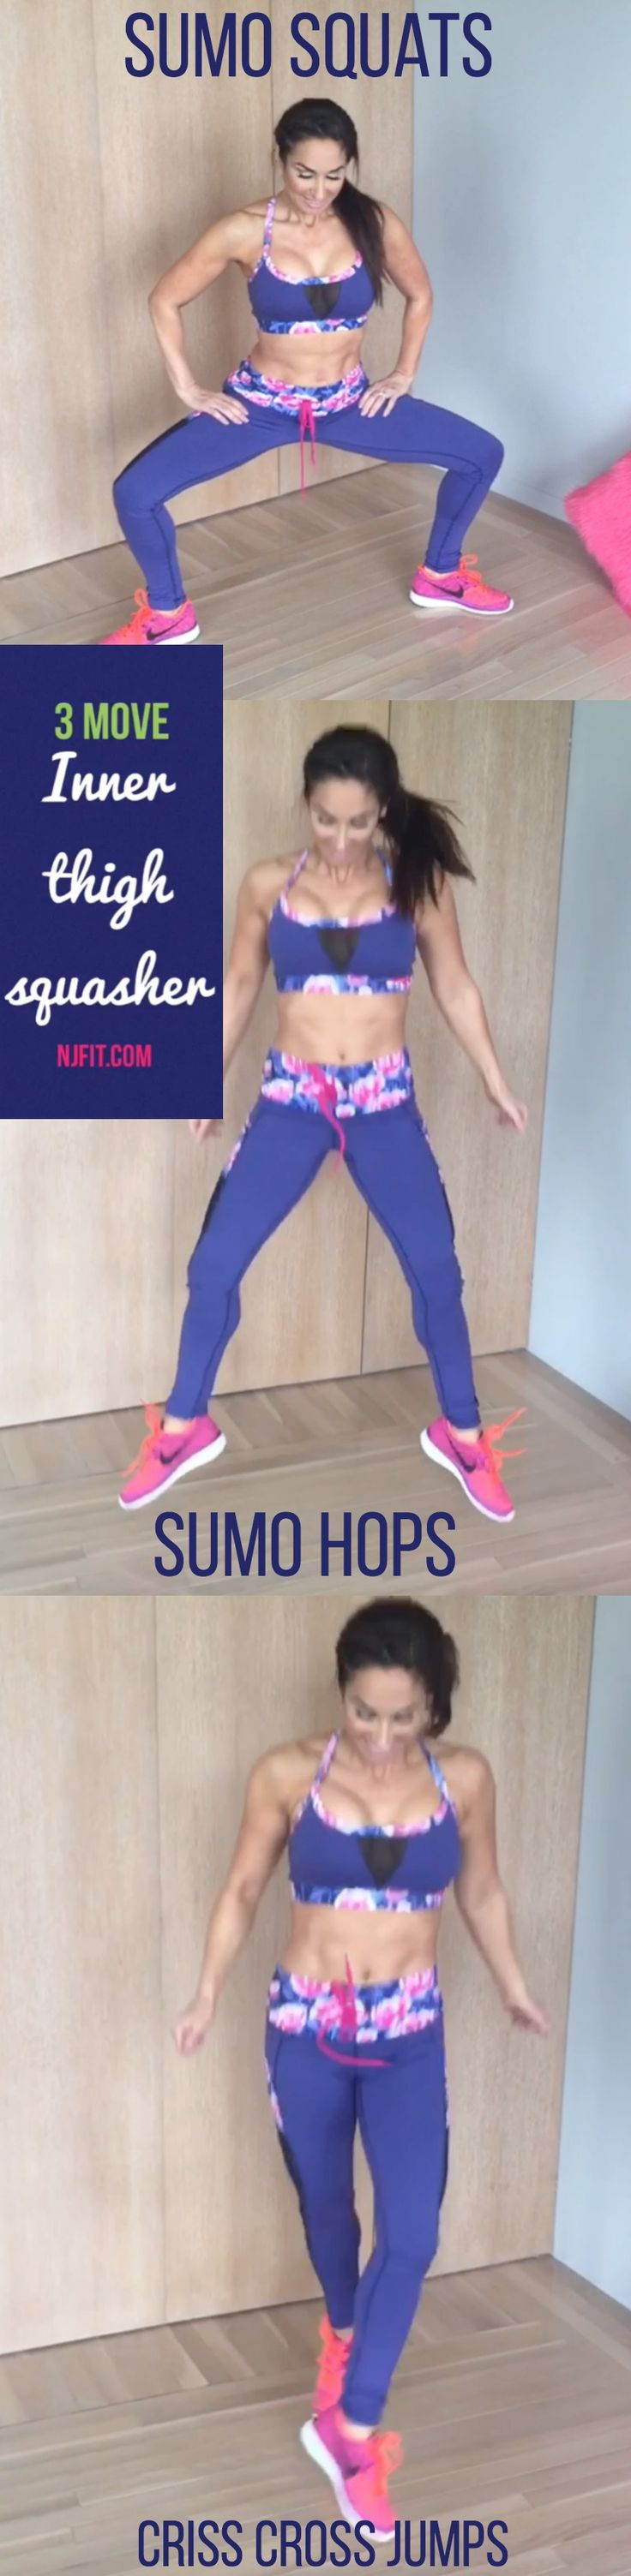 3 move inner thigh squasher! ARE YOU IN?  Mini Sumo Squats Mini sumo hops Criss cross legs forward and back  Let's go! Click the image to watch full workout video.